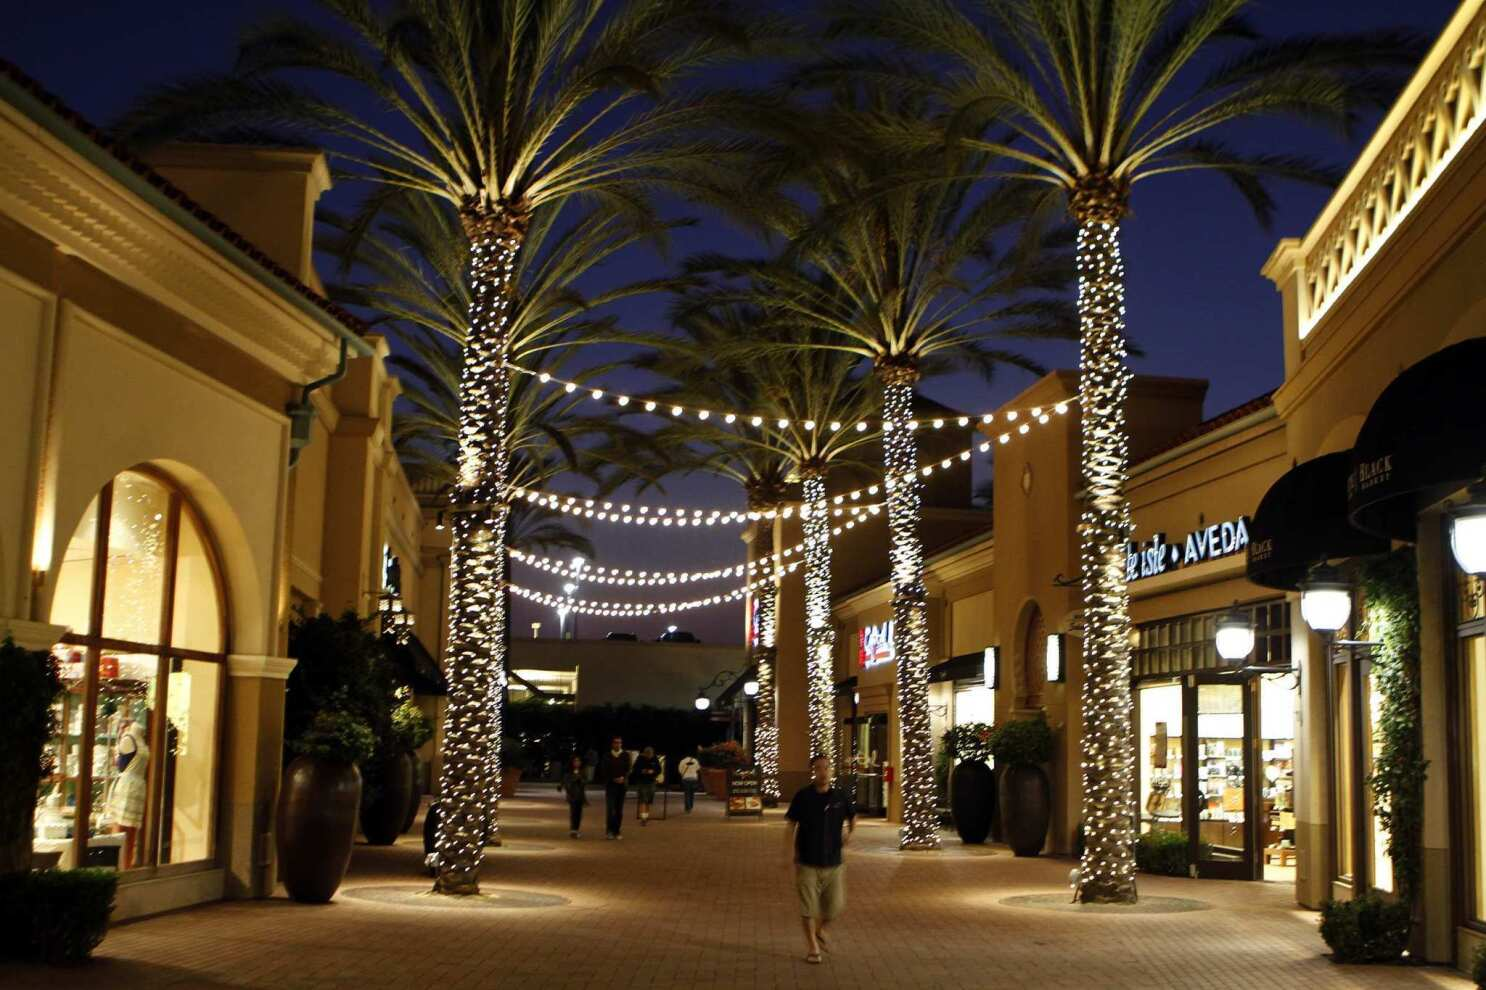 Irvine Spectrum Center Shopping Mall In Southern California Los Angeles Times